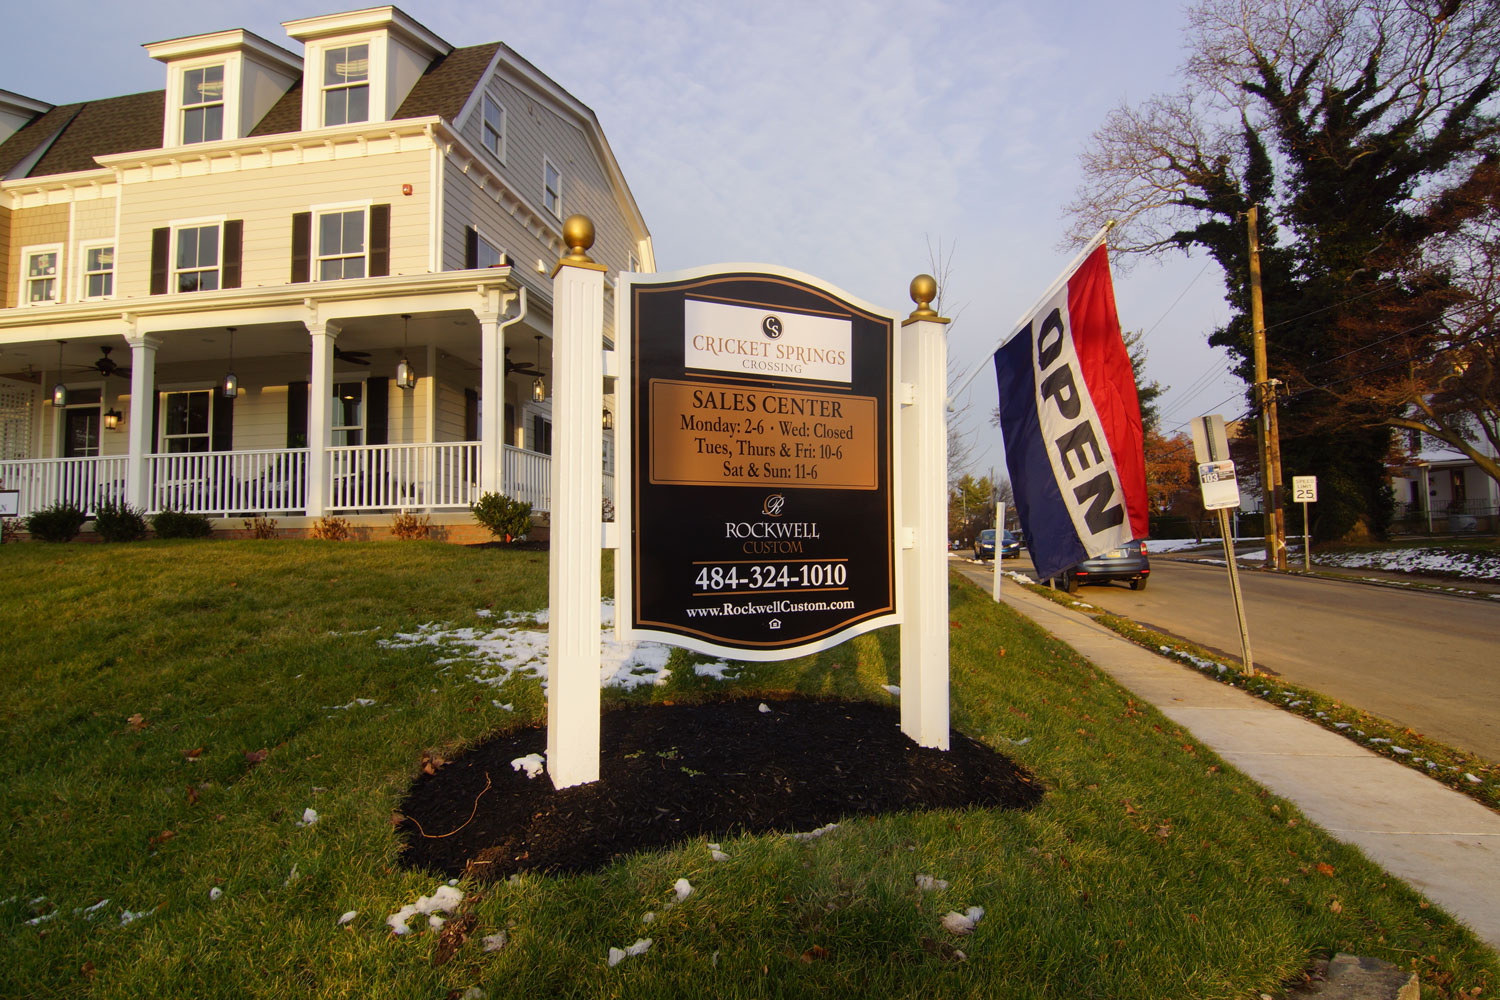 The sign and front of the model building of the Cricket Springs Crossing townhouse development in Ardmore, PA